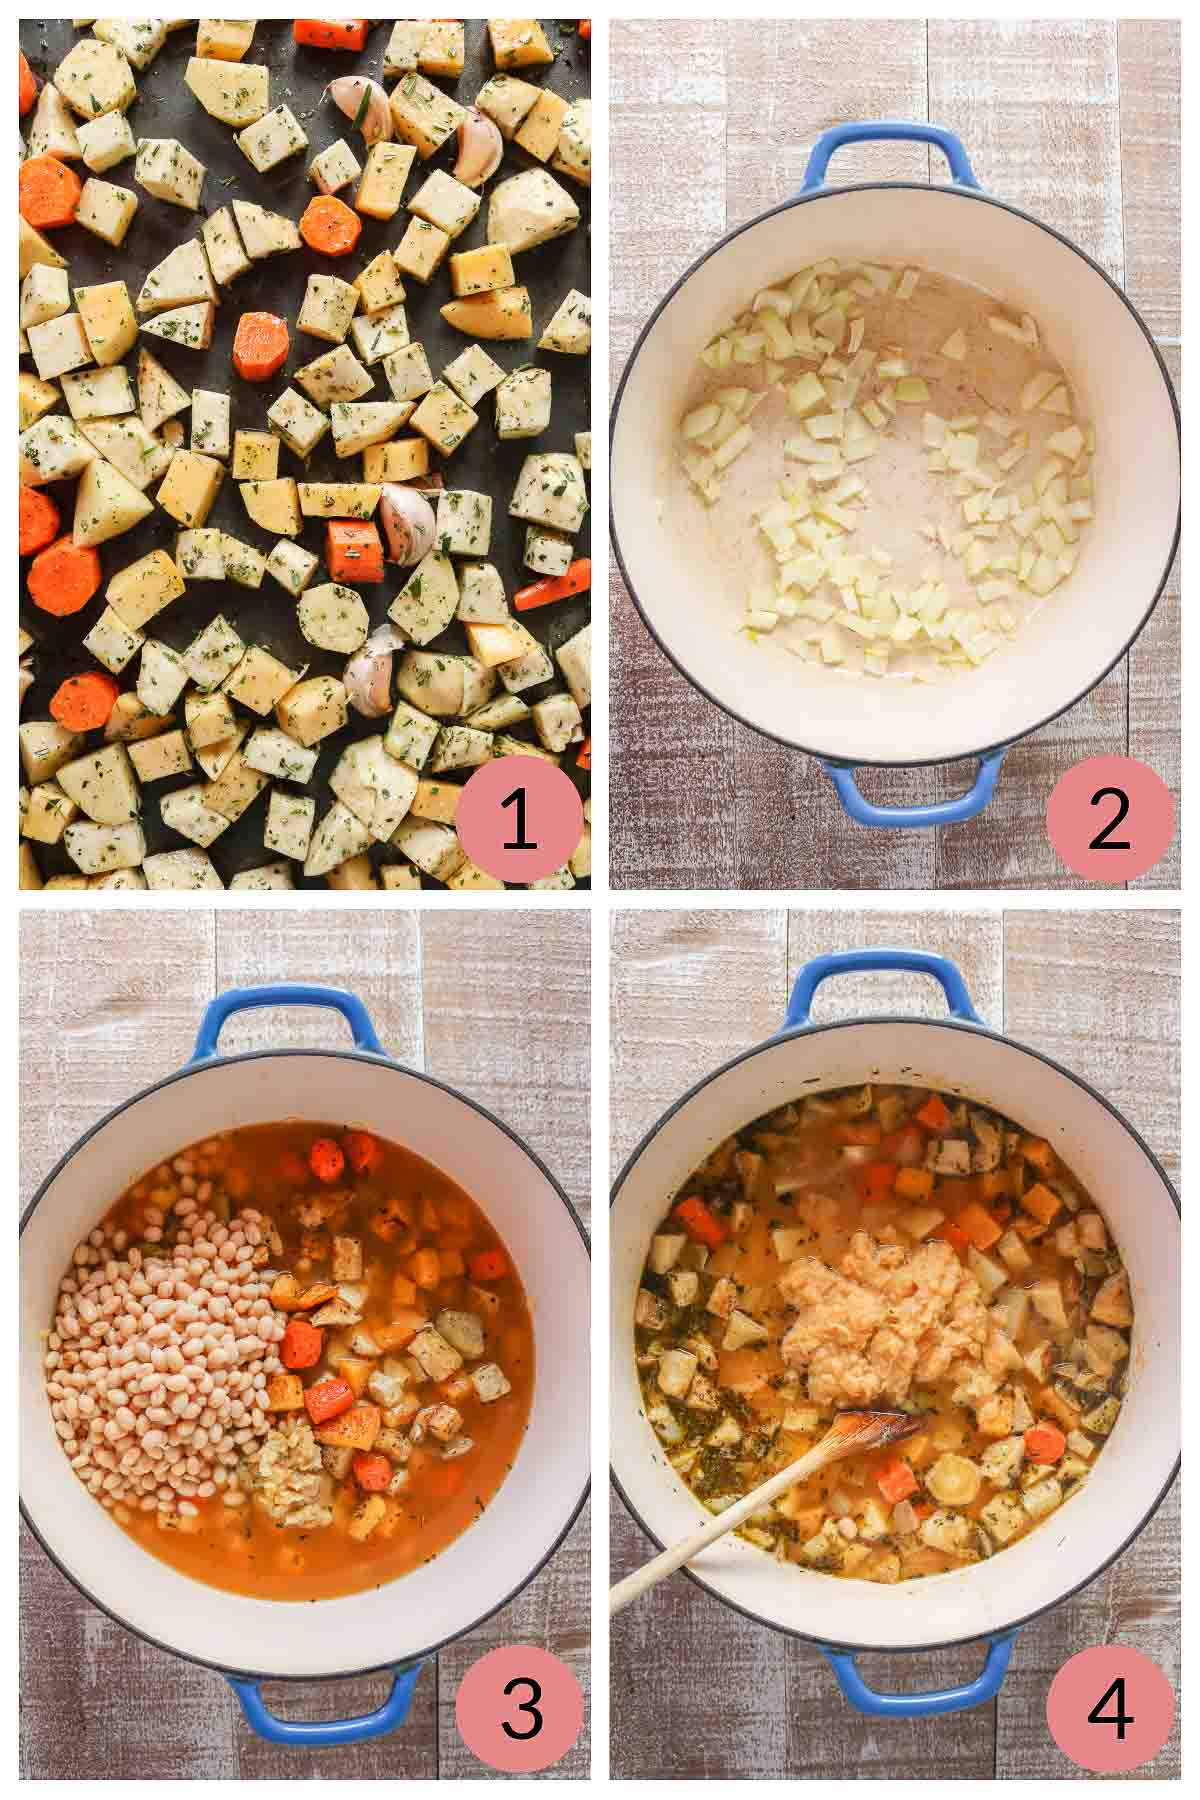 Collage of steps to make root vegetable soup with beans.